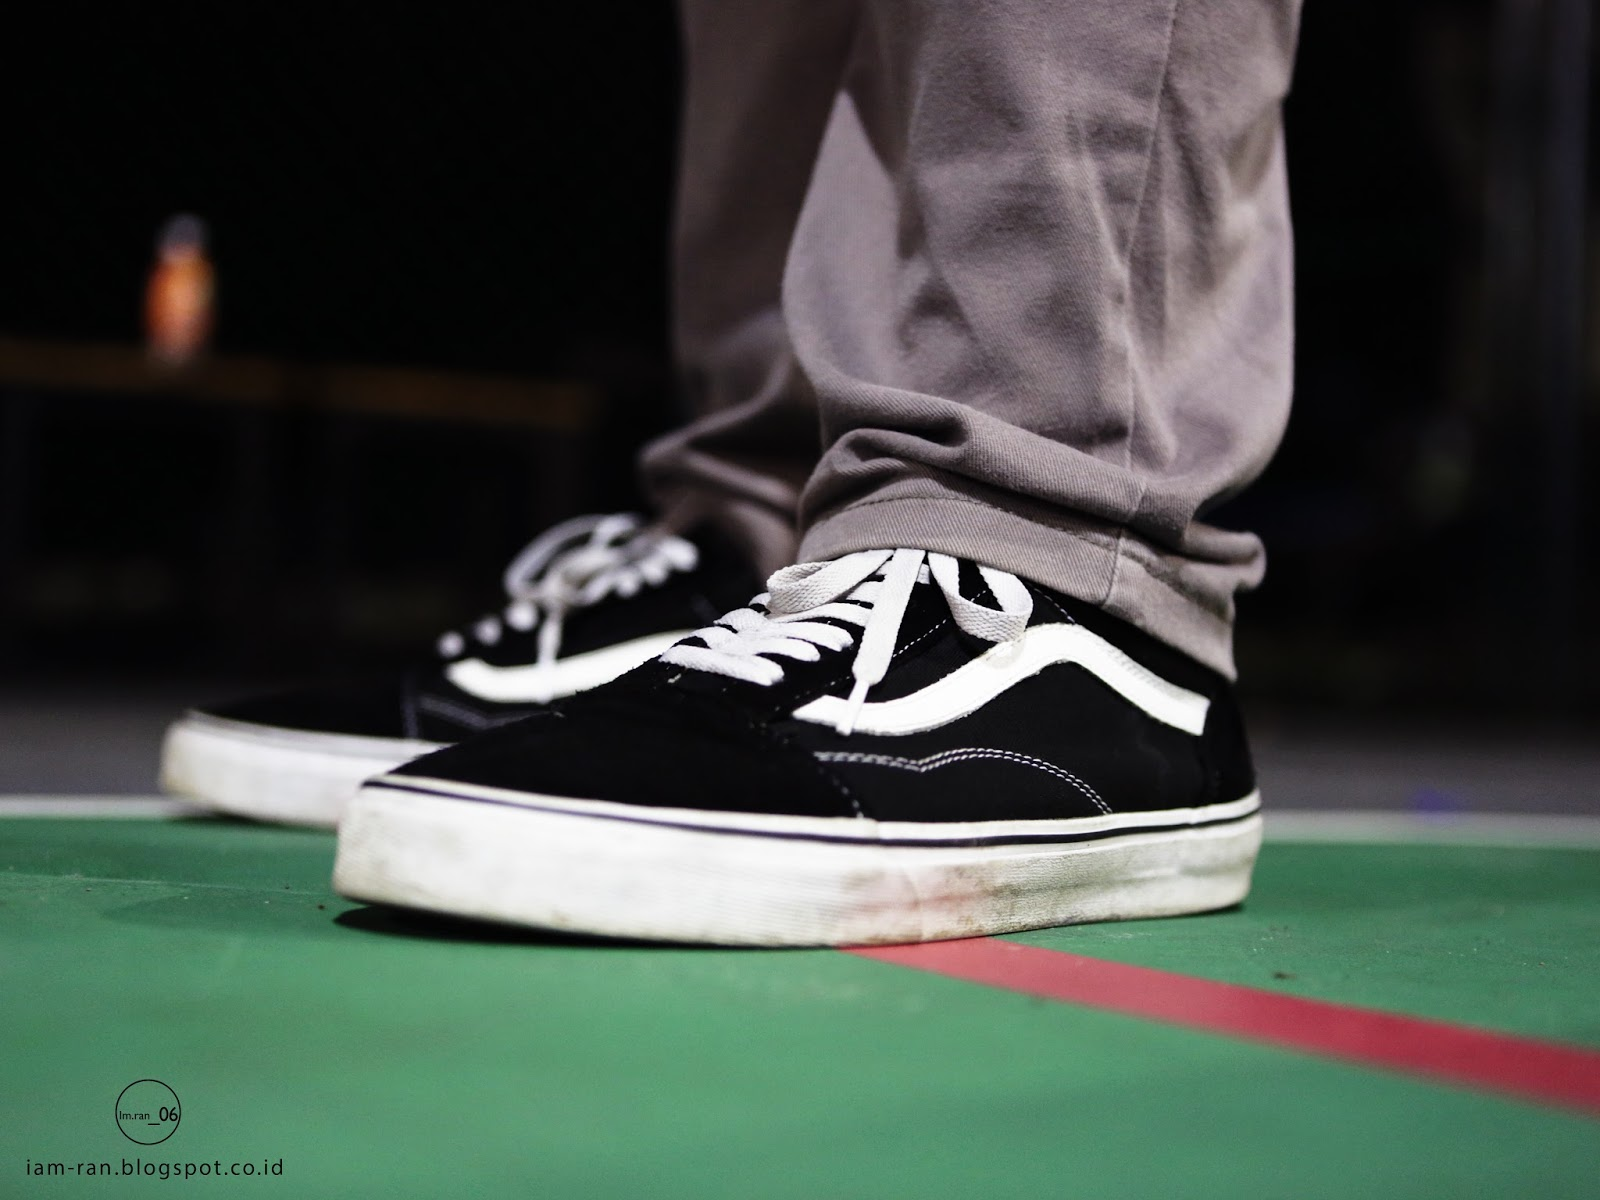 03e3034ac4a Sneakers   Vans old school classic black and white. Photo by   iam.ran06